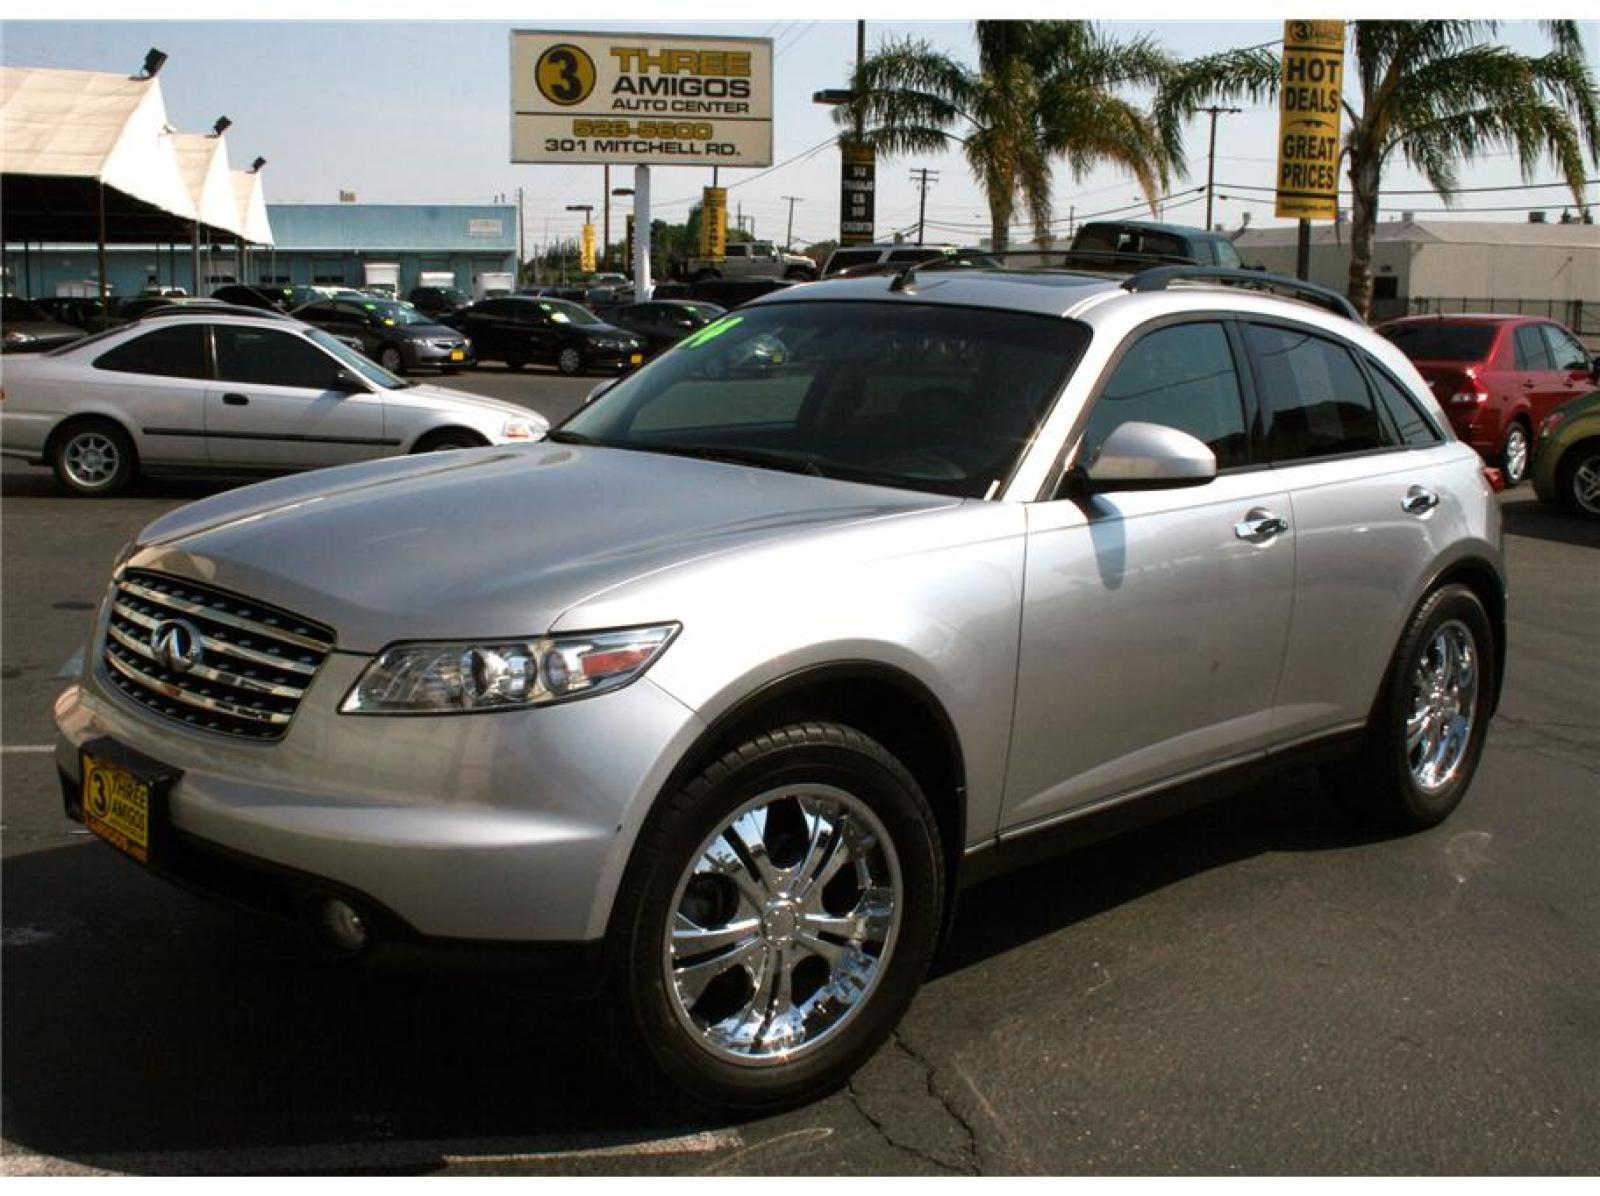 2004 infiniti fx35 information and photos zombiedrive. Black Bedroom Furniture Sets. Home Design Ideas